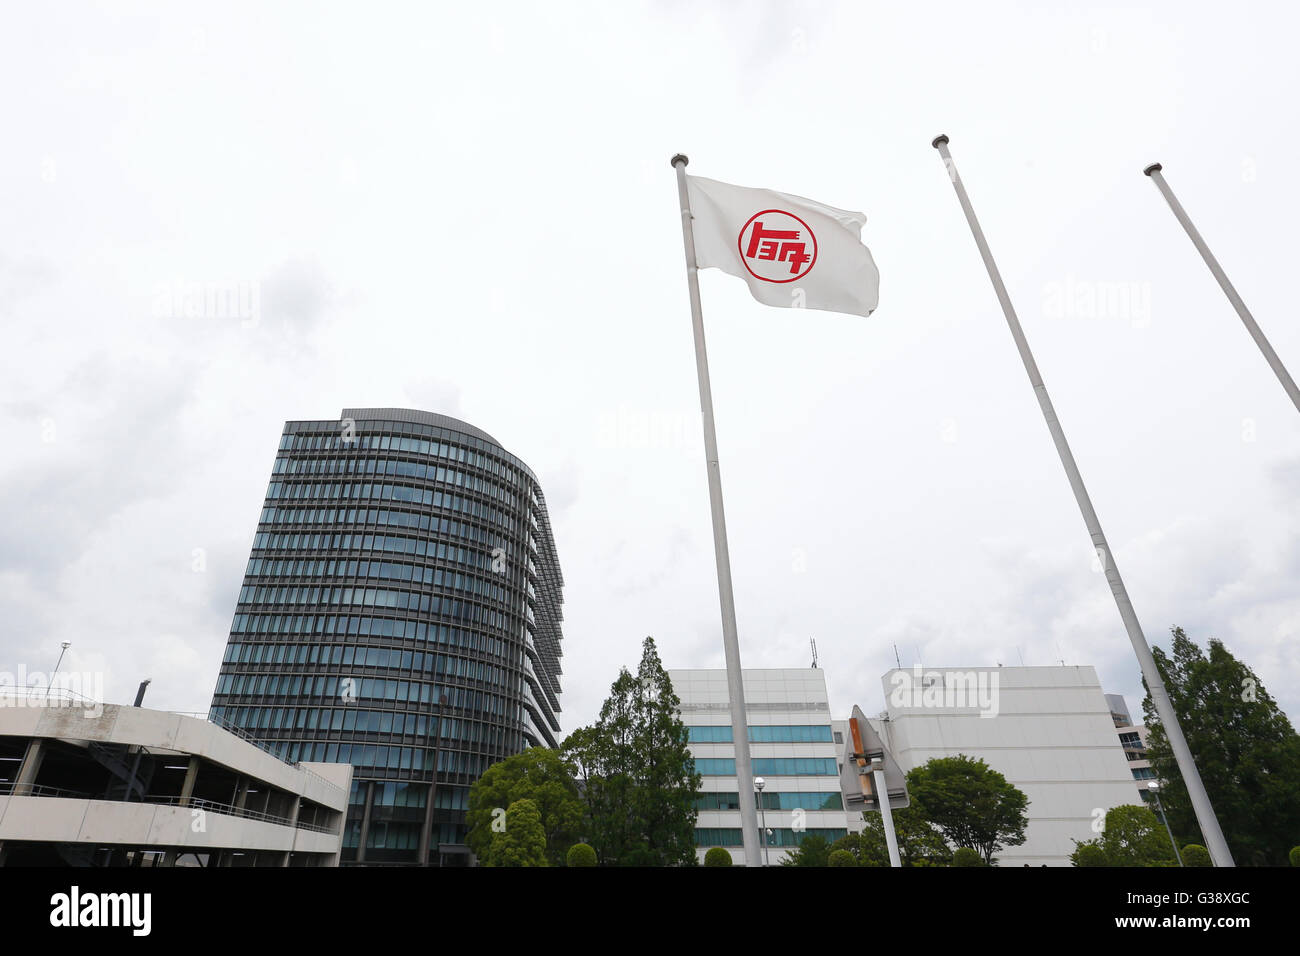 Toyota motor corp headquarters in toyota city aichi prefecture japan on june 4 2016 sho tamura aflo alamy live news